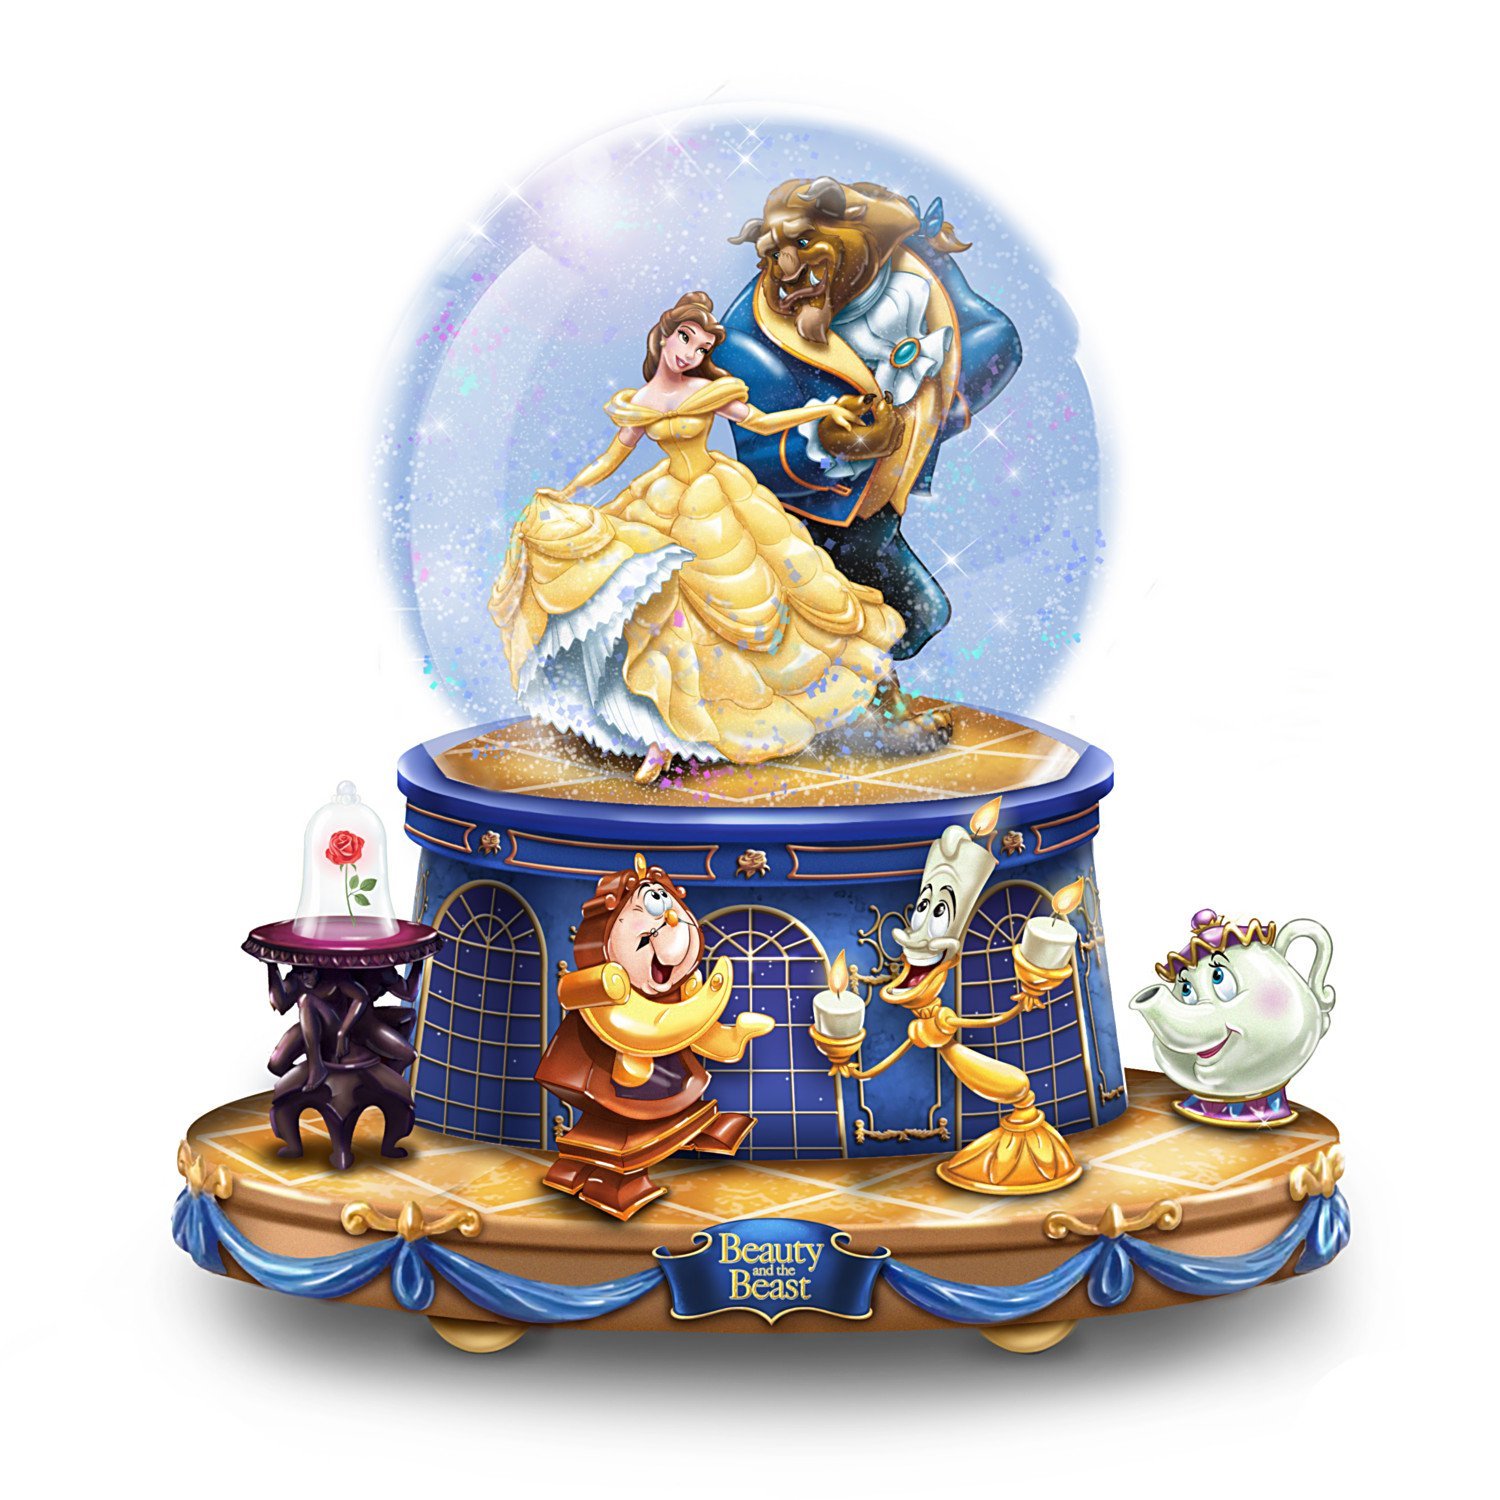 Image of Rotating Disney Musical Beauty And The Beast Water Globe